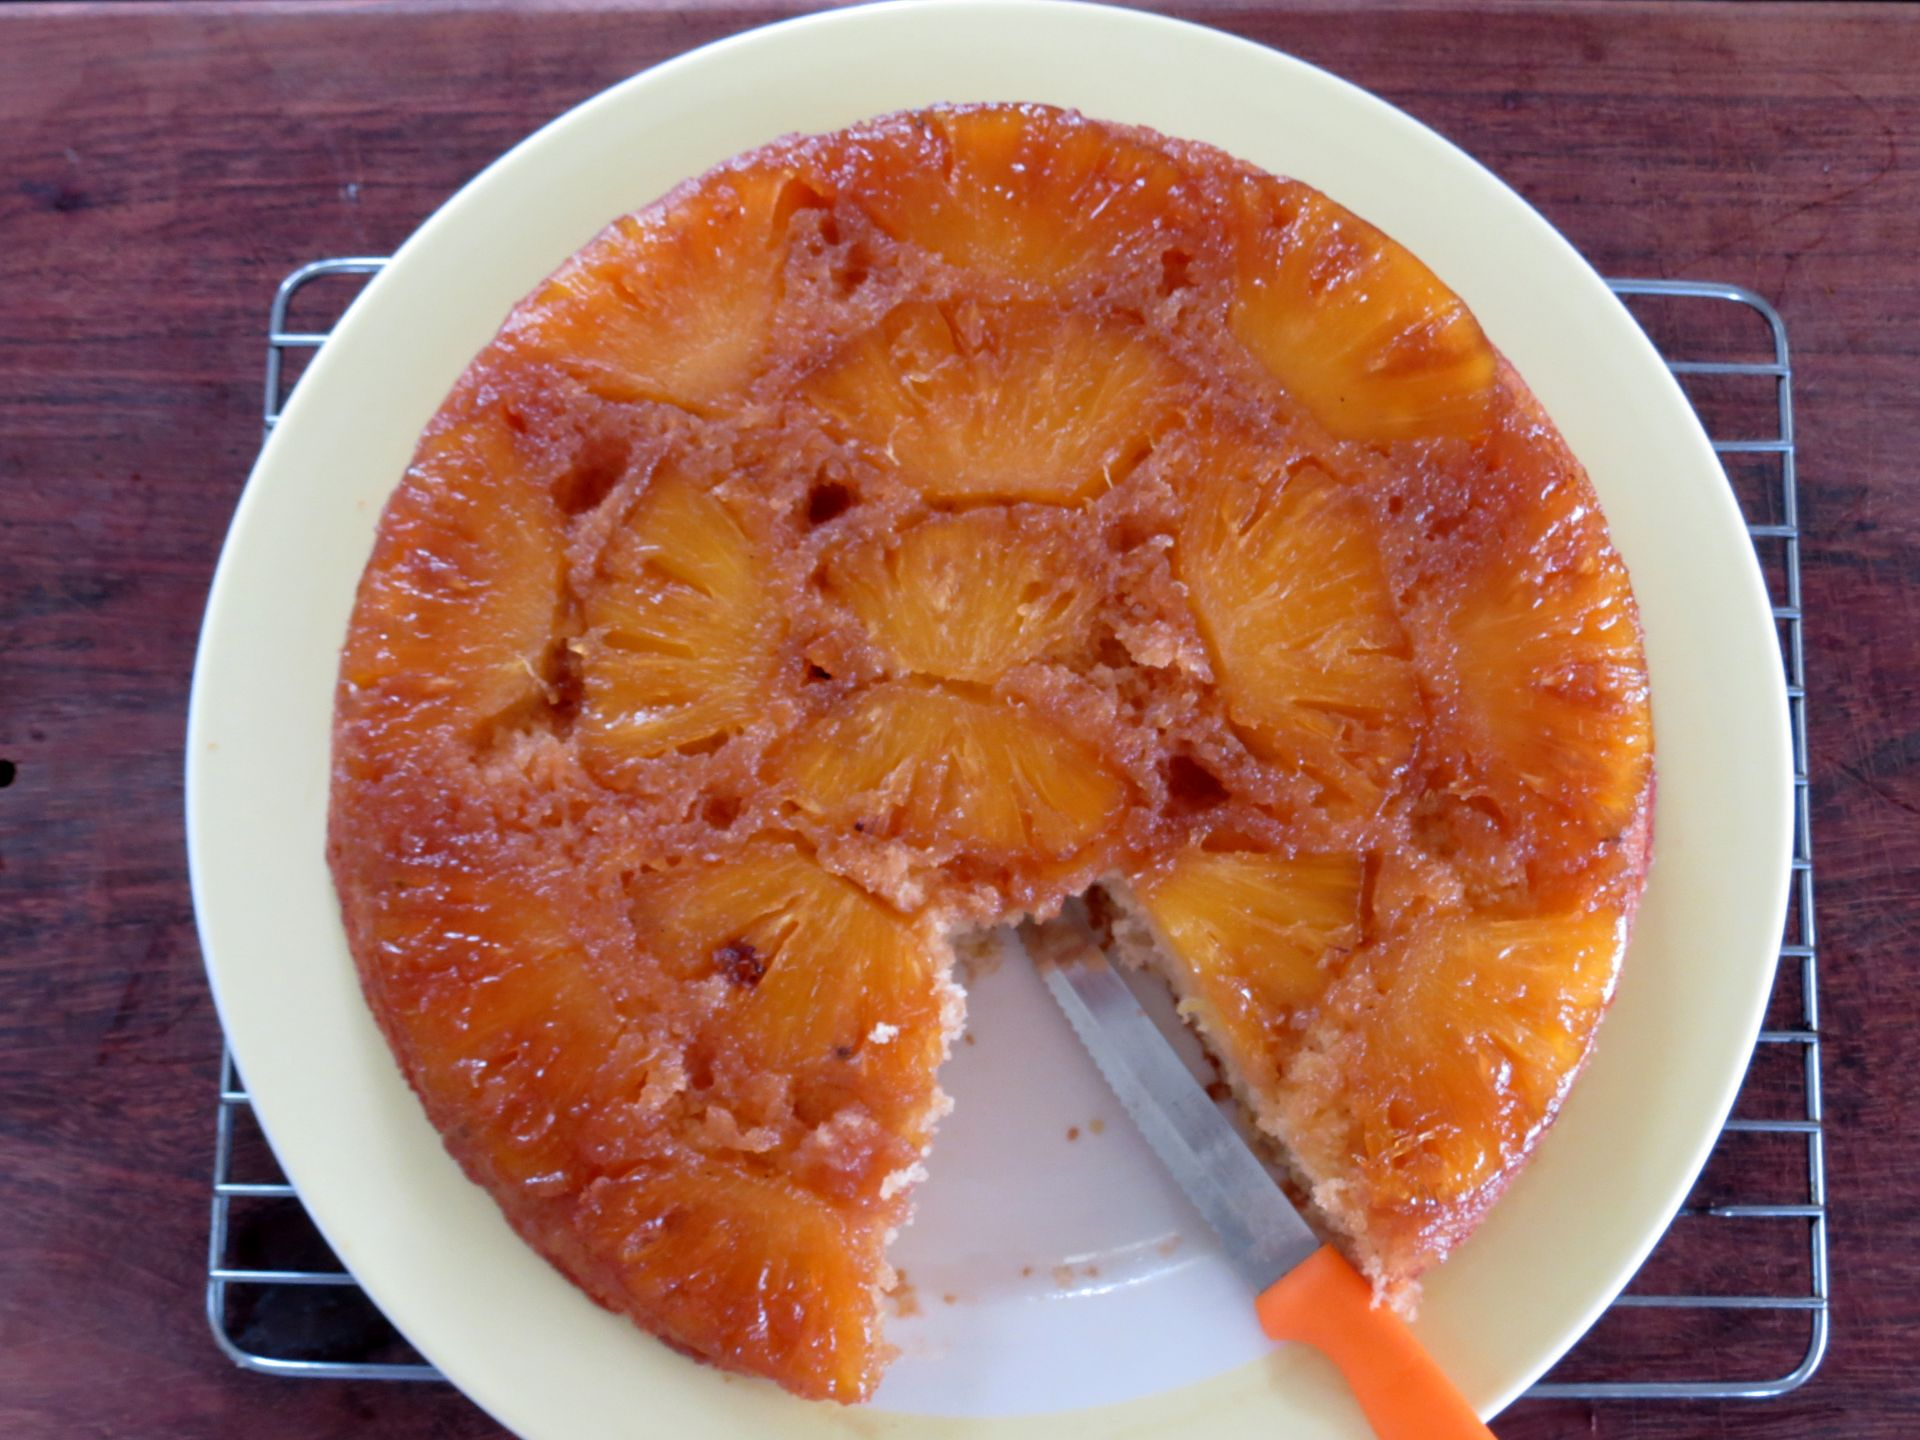 Pineapple Upside Down Cake Recipe - The Frugal Chef